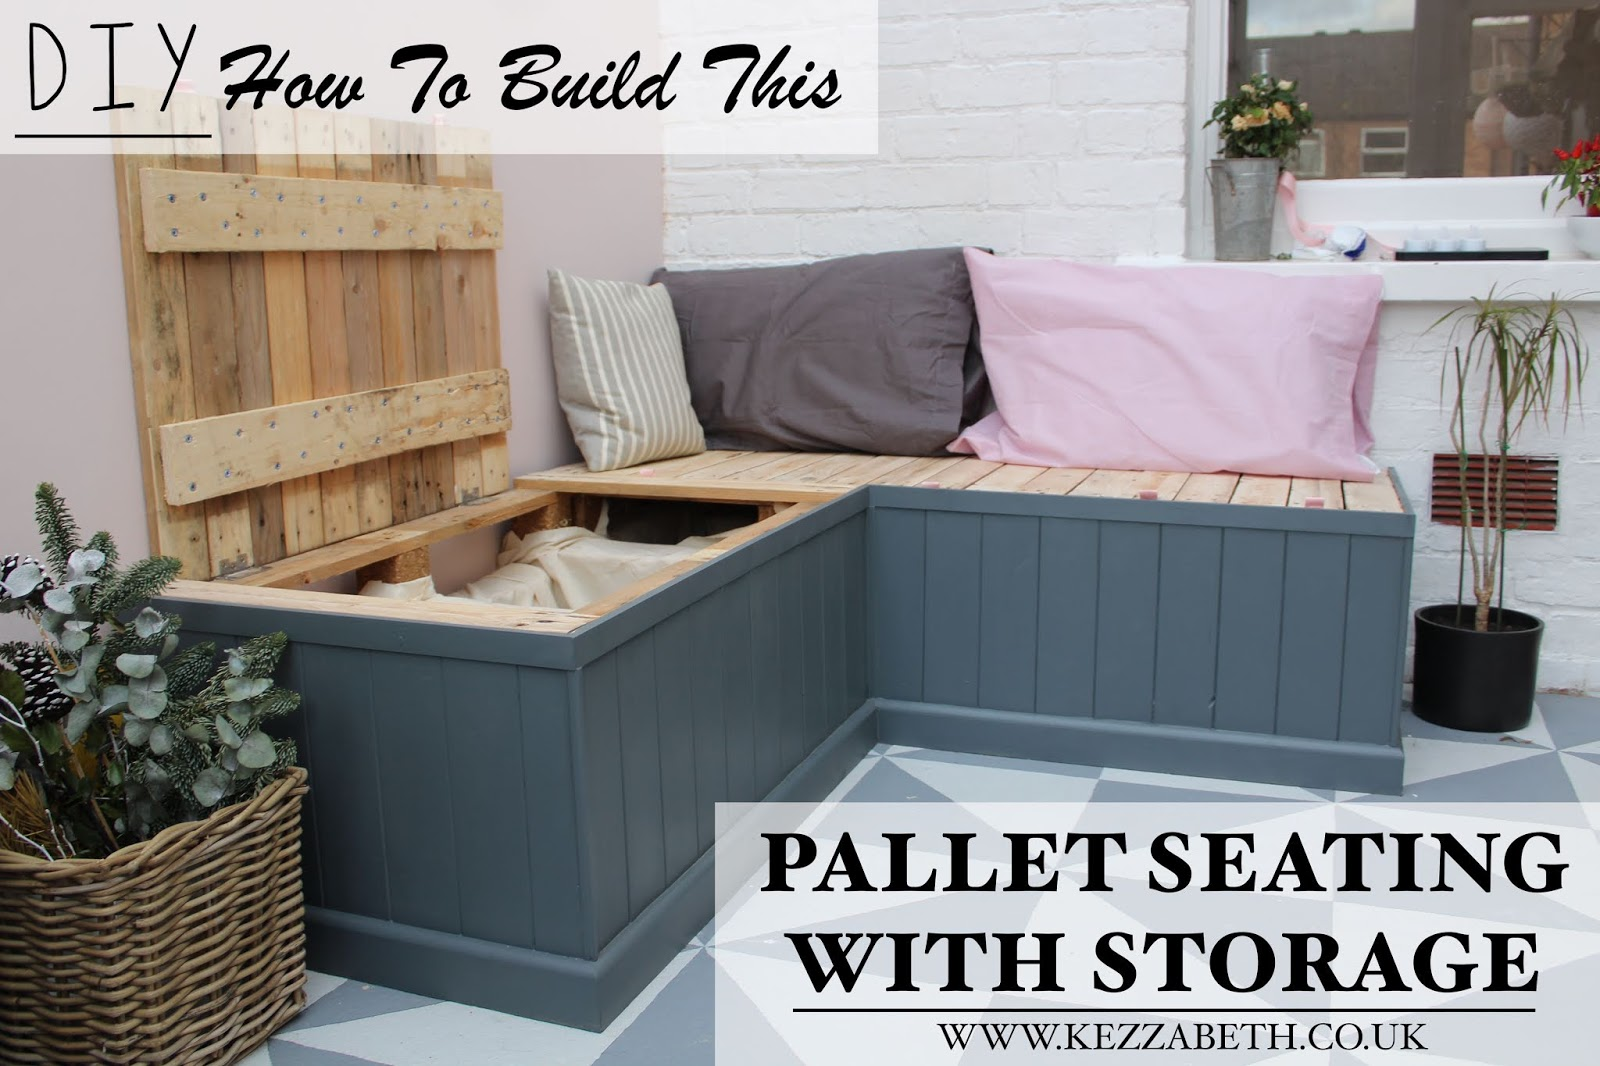 自己动手做pallet seating with storage